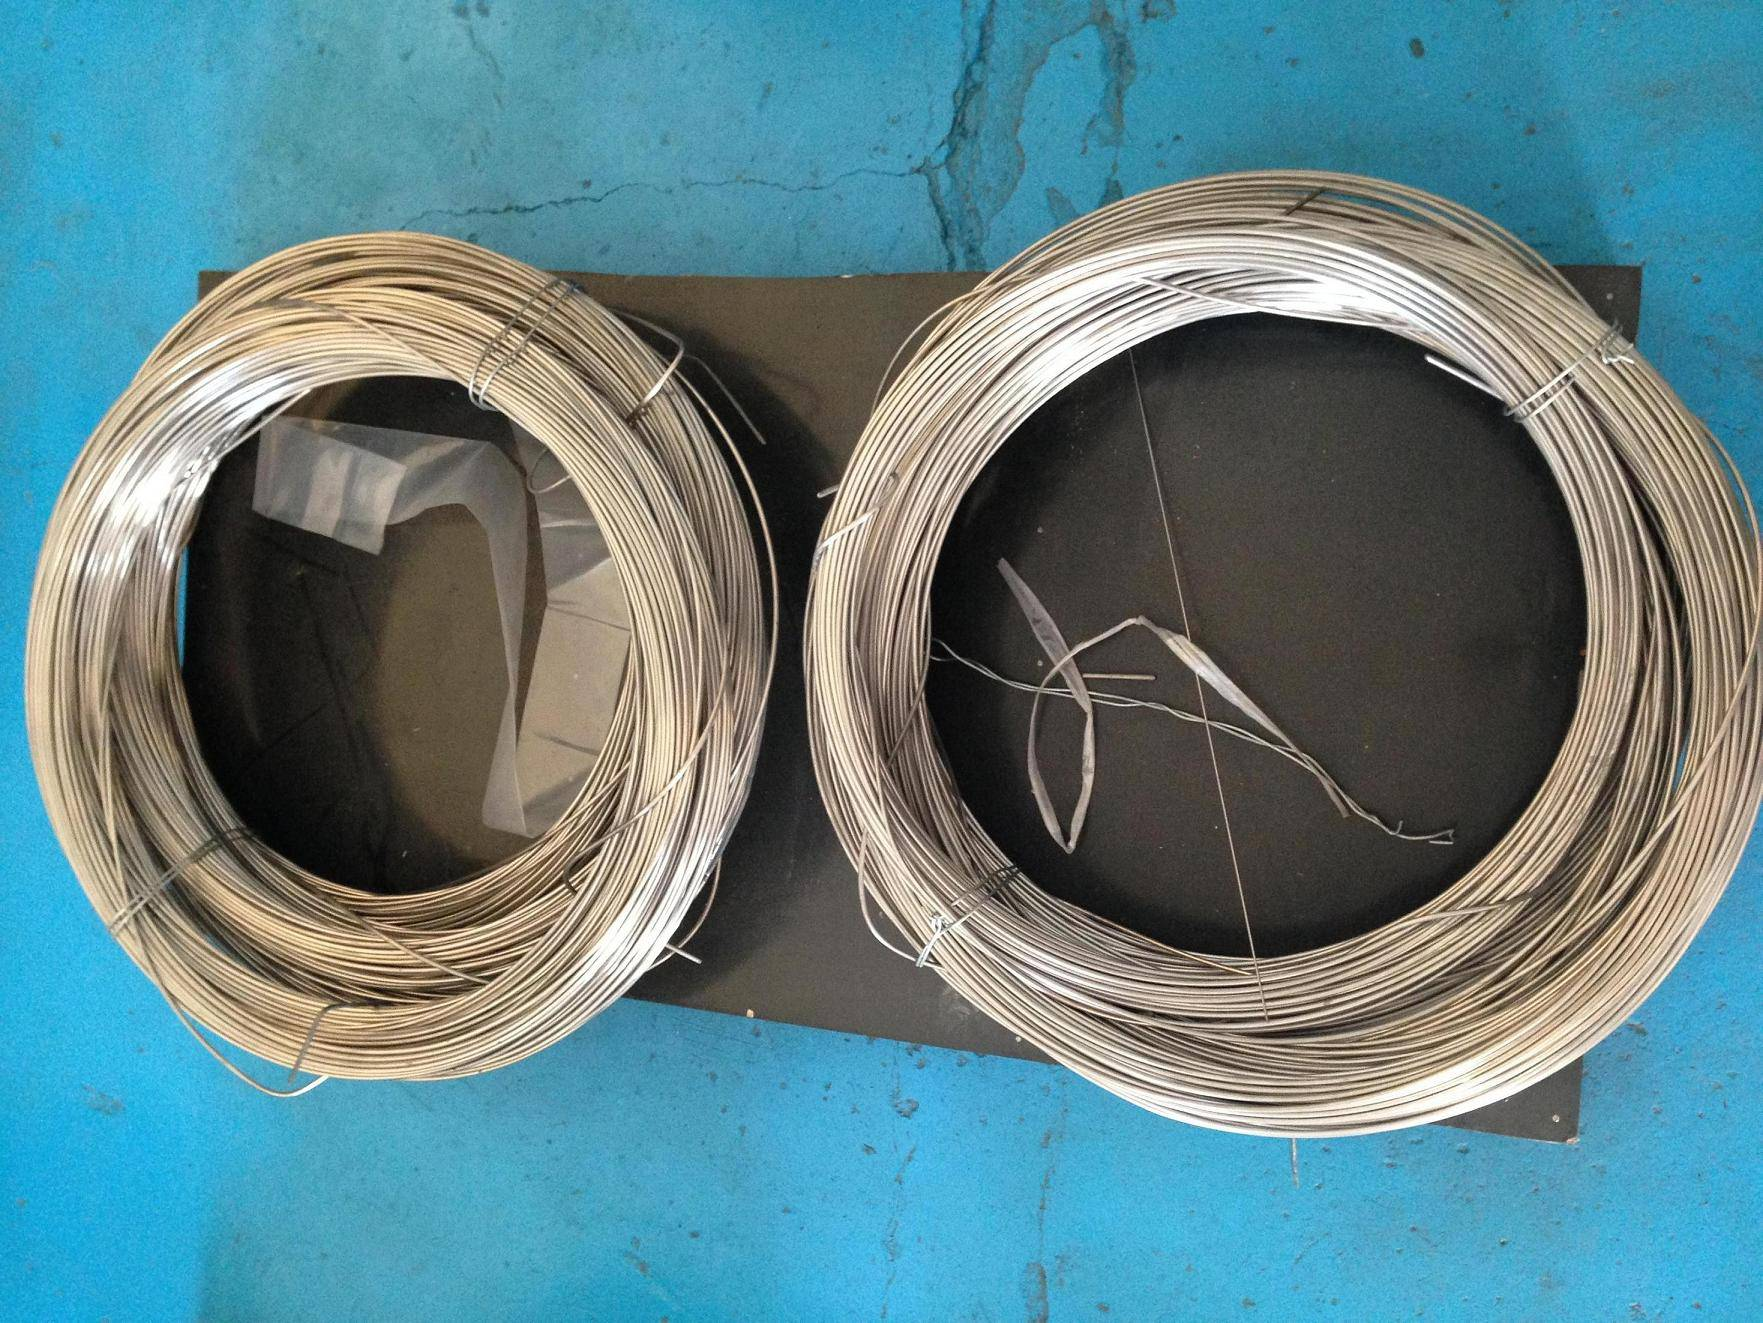 titanium welding wire, coiling, apple wire